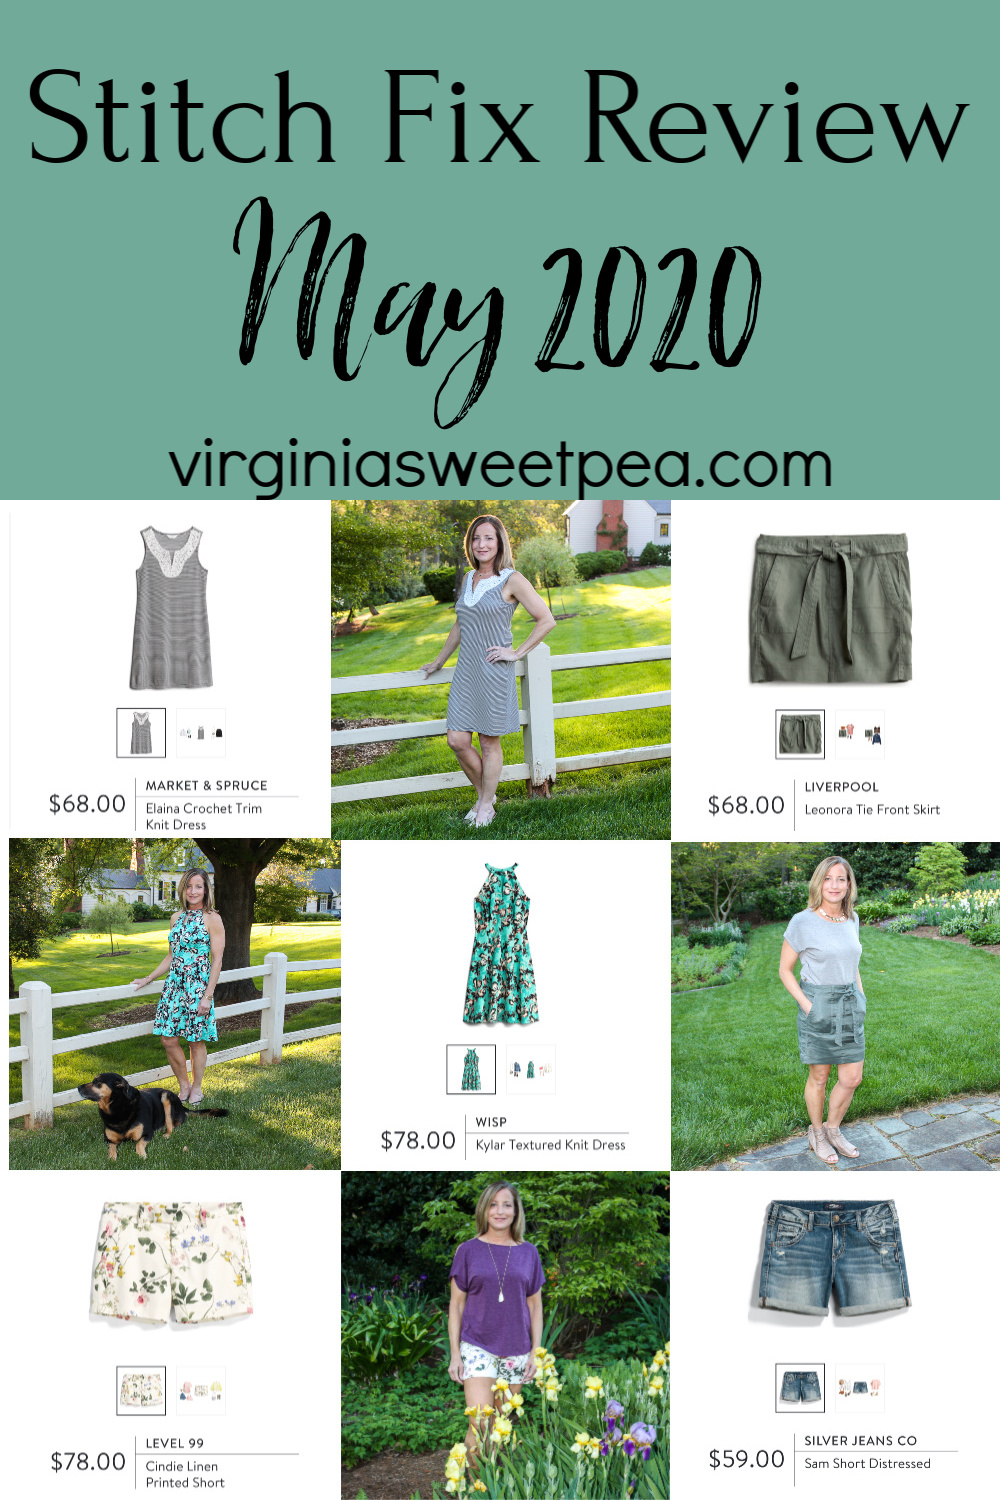 Stitch Fix Review for May 2020 - See spring to summer Stitch Fix styles for May.  #stitchfix #stitchfixreview #stitchfixstyle #virginiasweetpea via @spaula